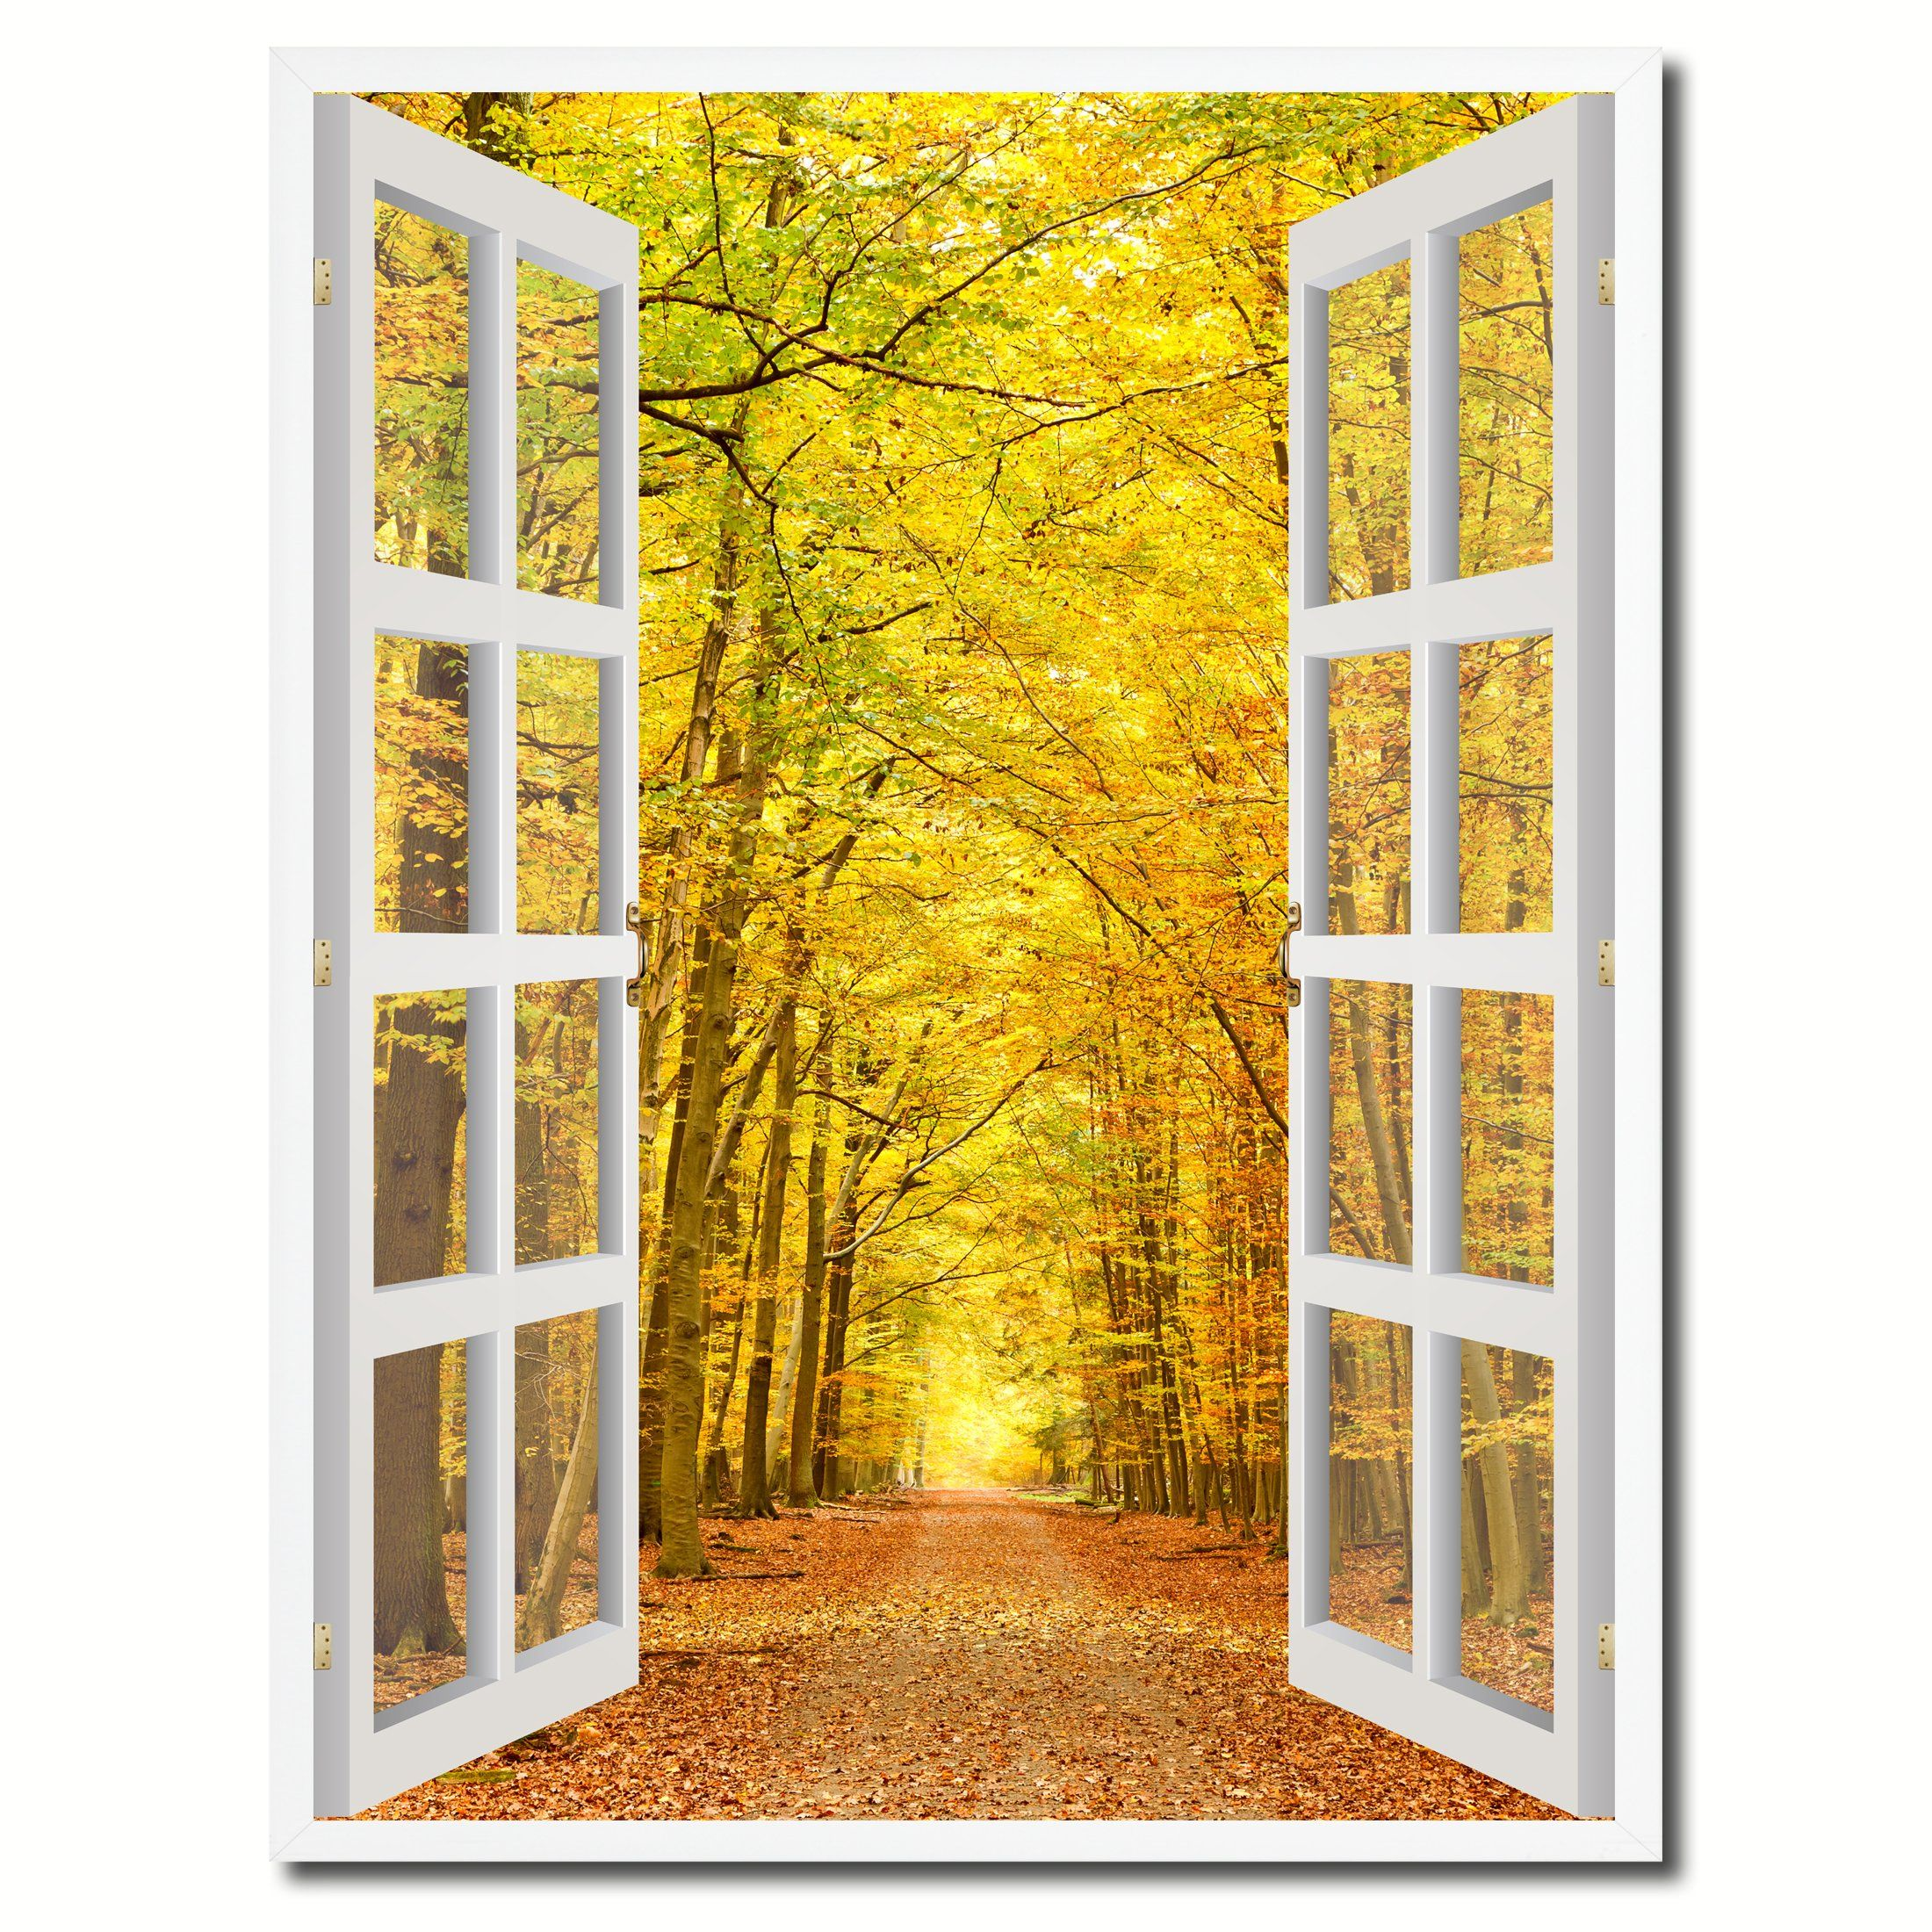 Pathway Autumn Park Yellow Leaves Picture French Window Canvas Print ...